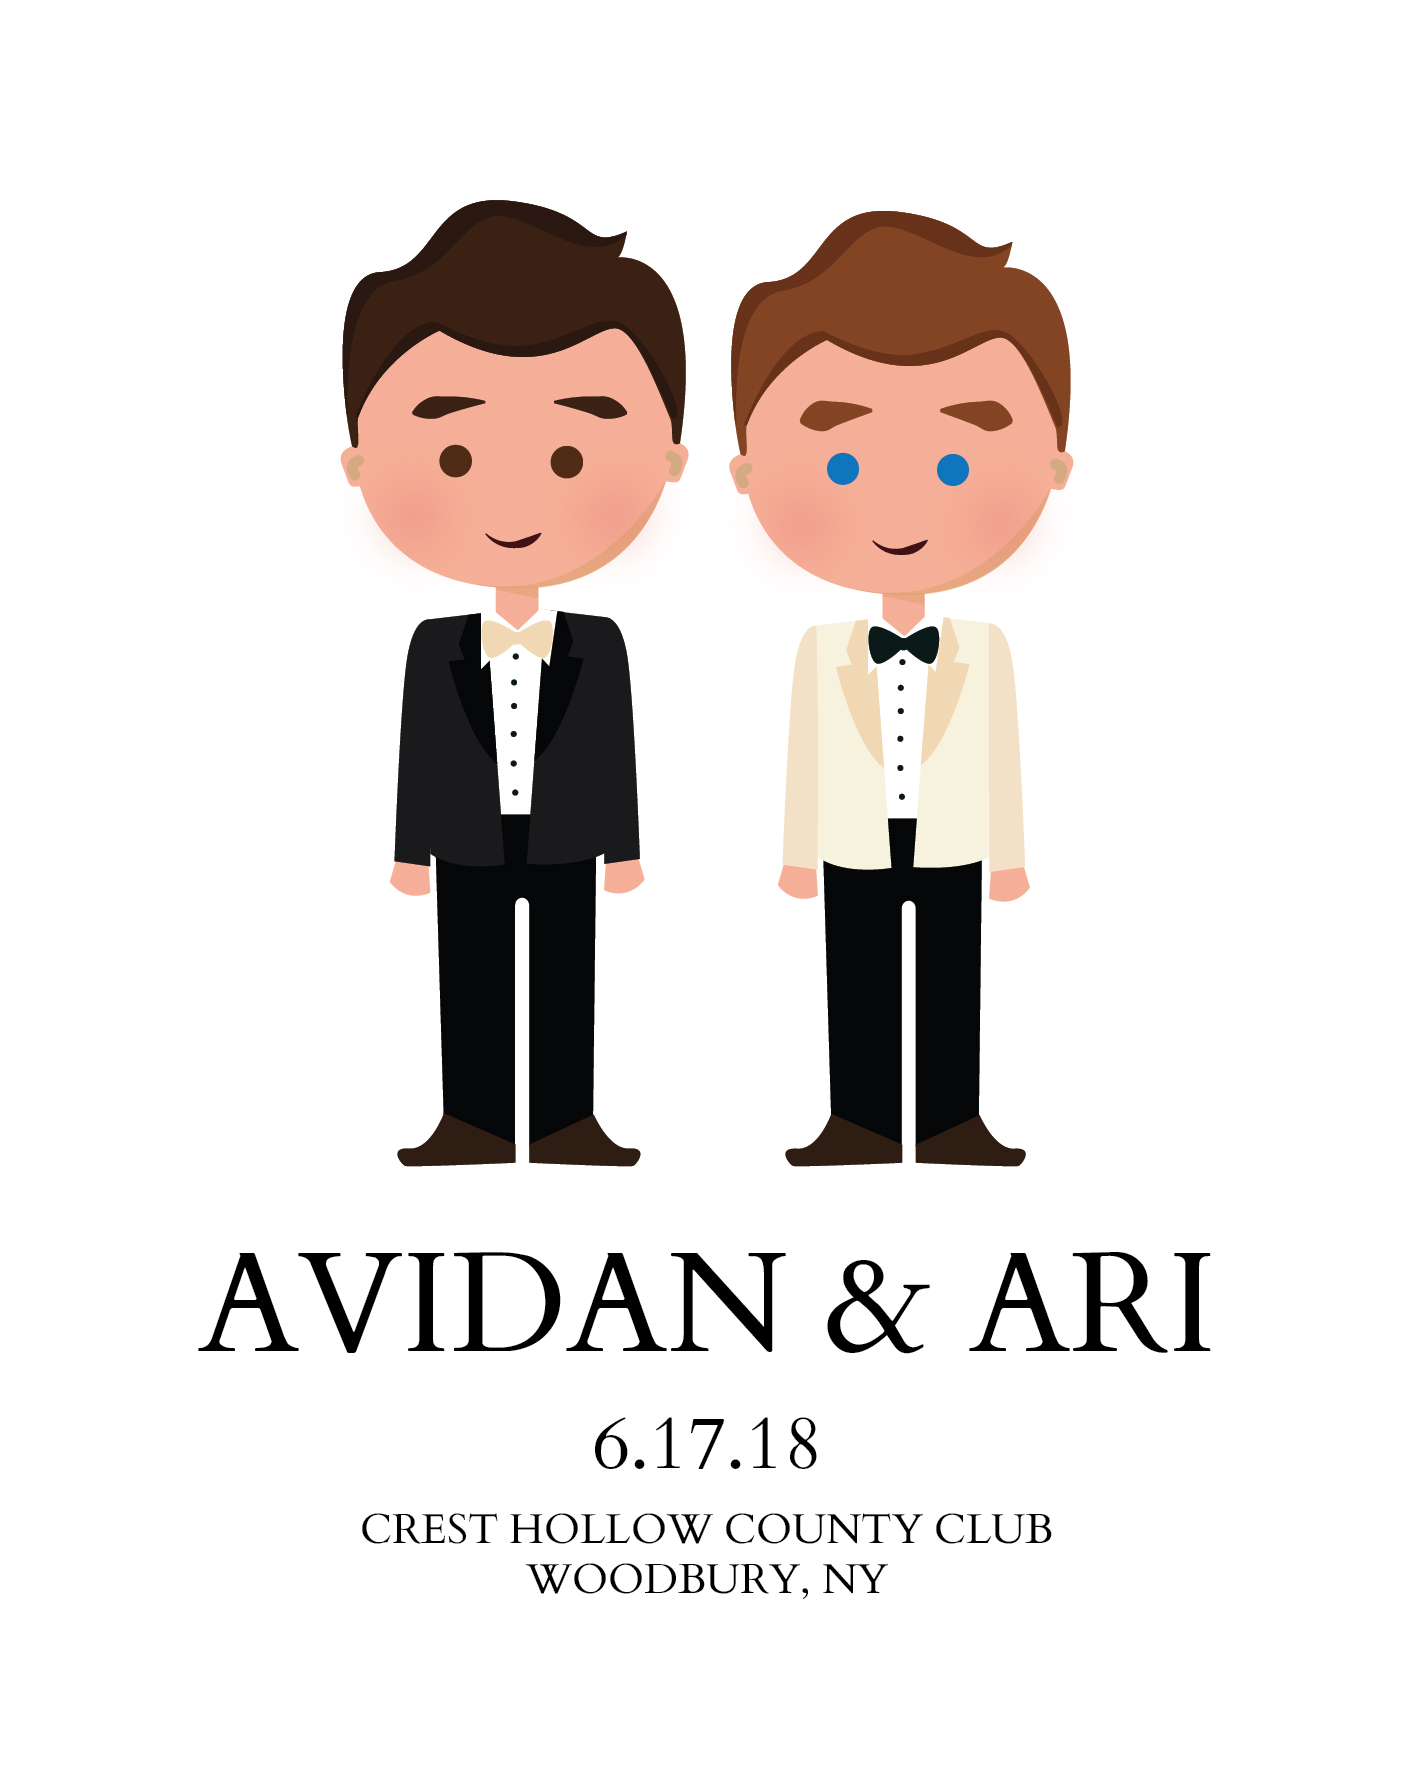 Avidan & Ari - Wedding Save the Date